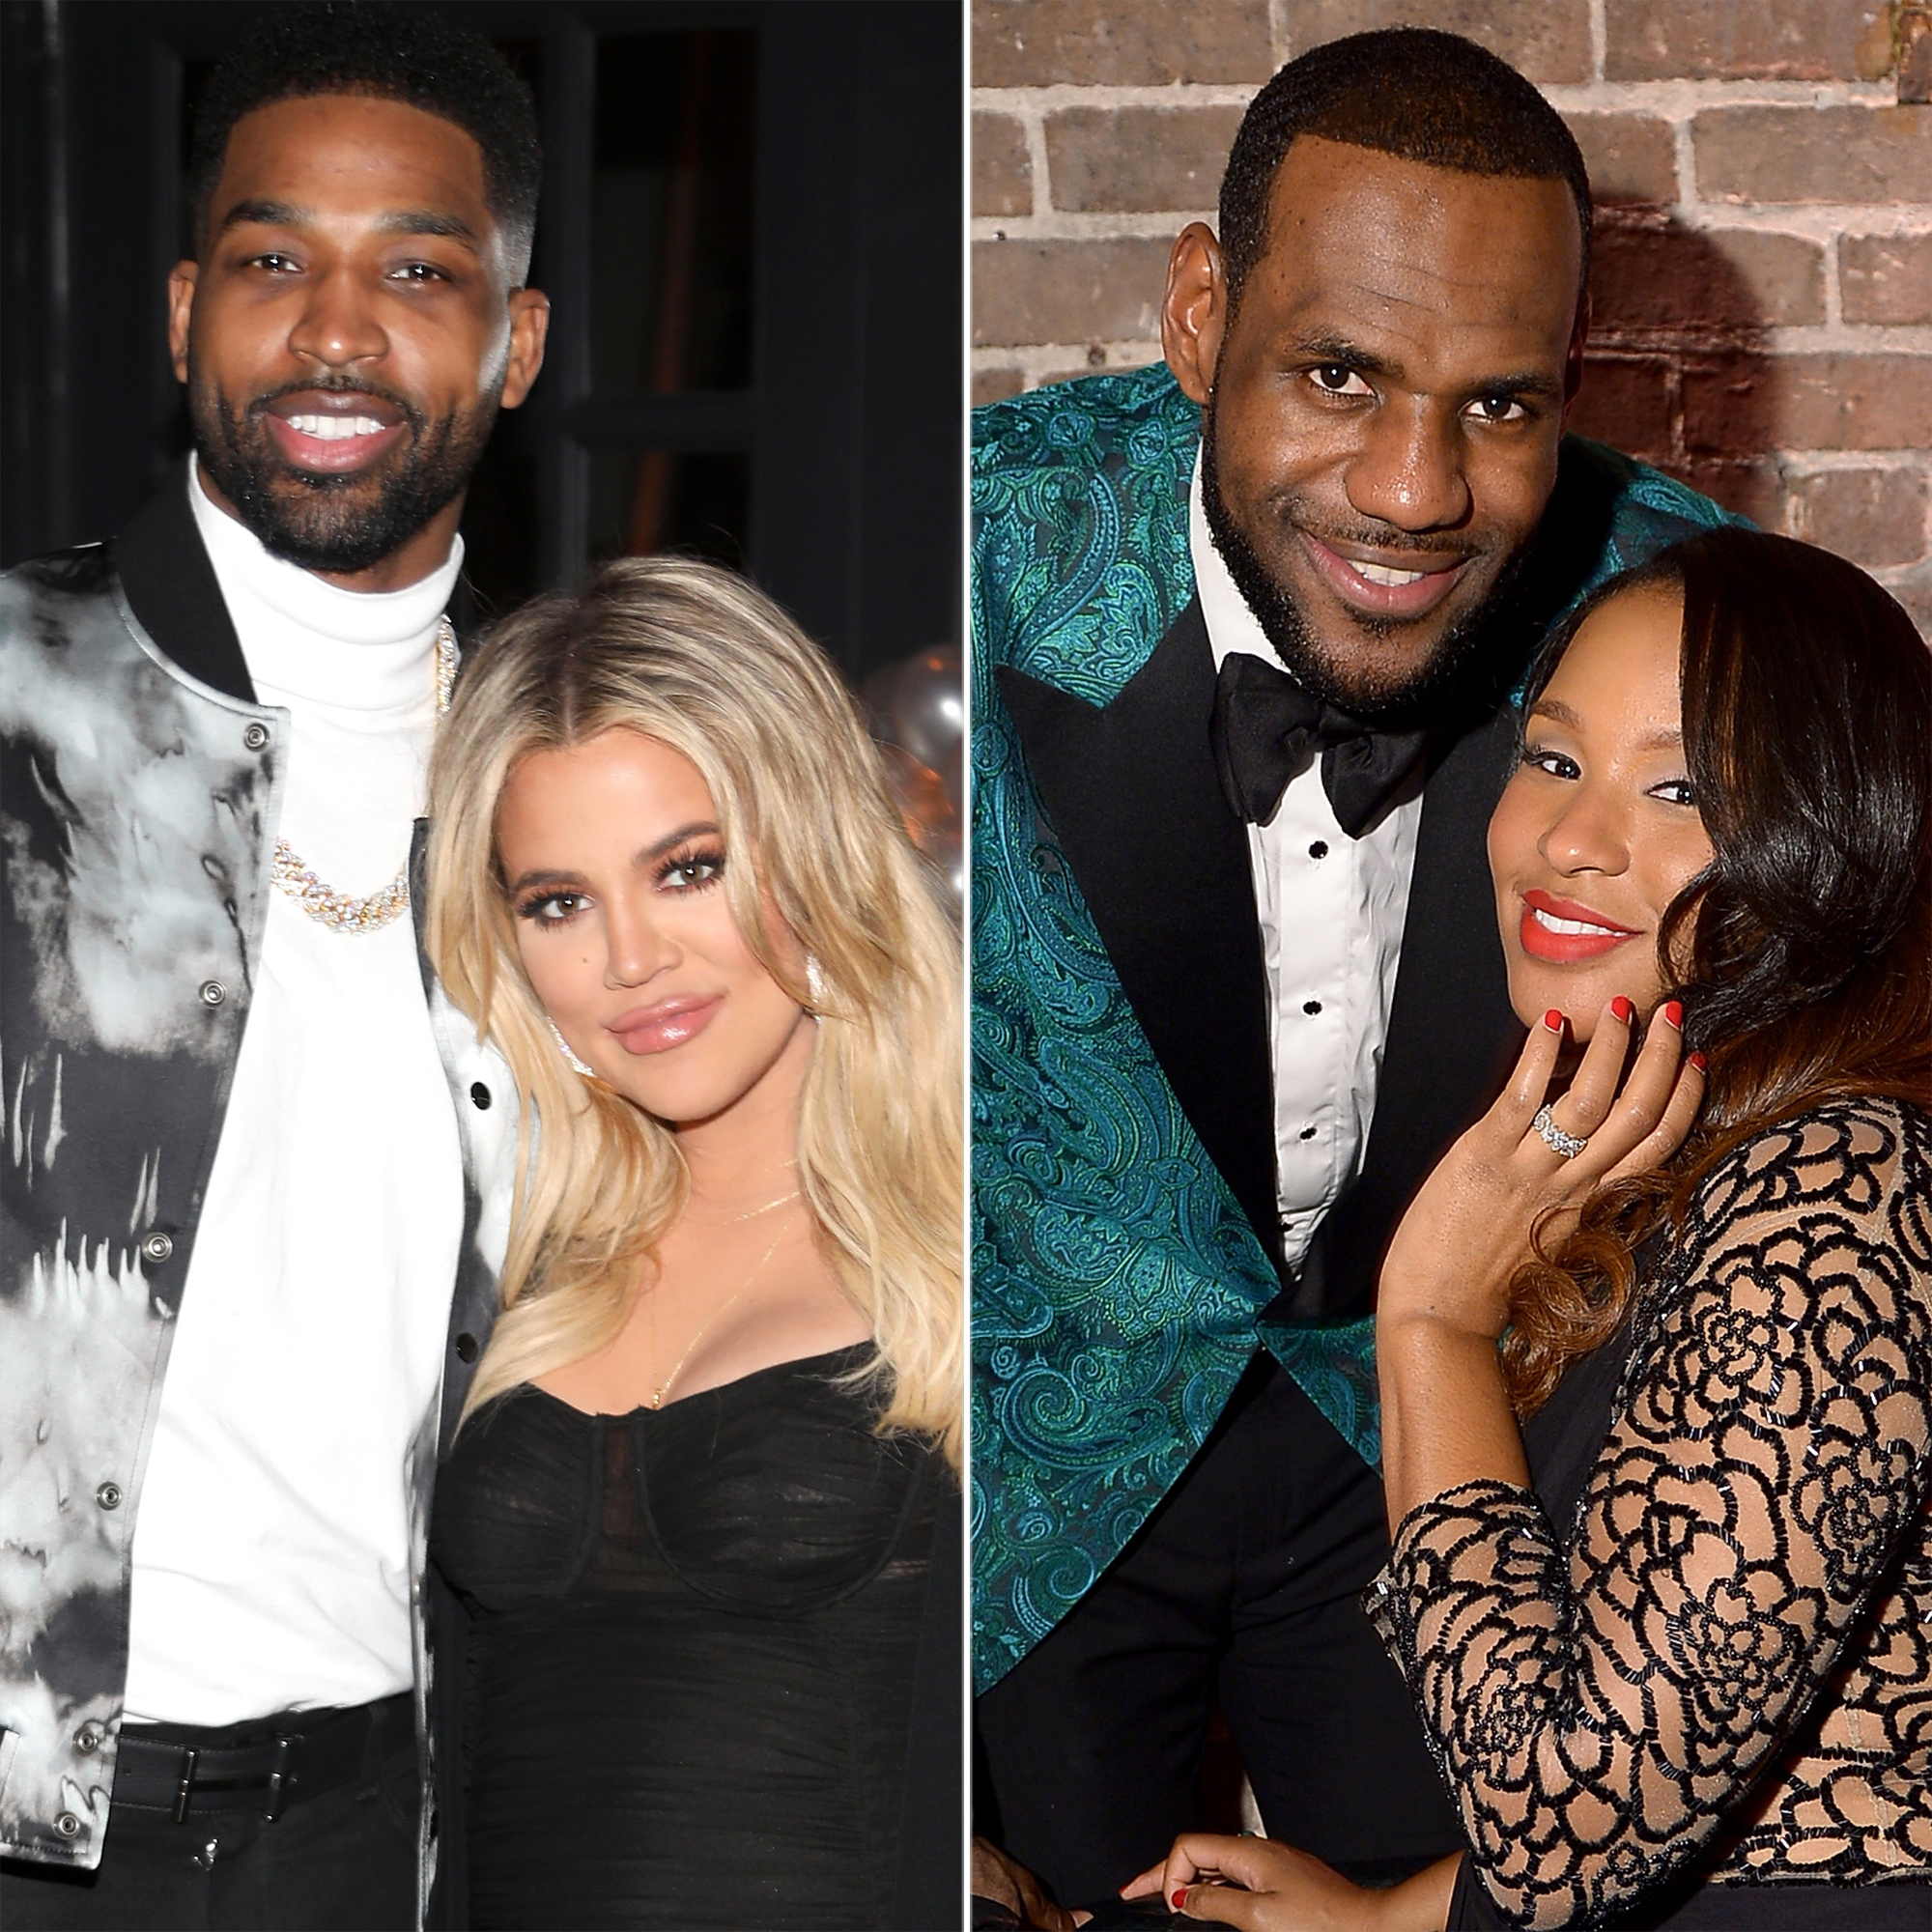 f31f2a97bcaf Khloe Kardashian and Tristan Thompson Double Date With LeBron James